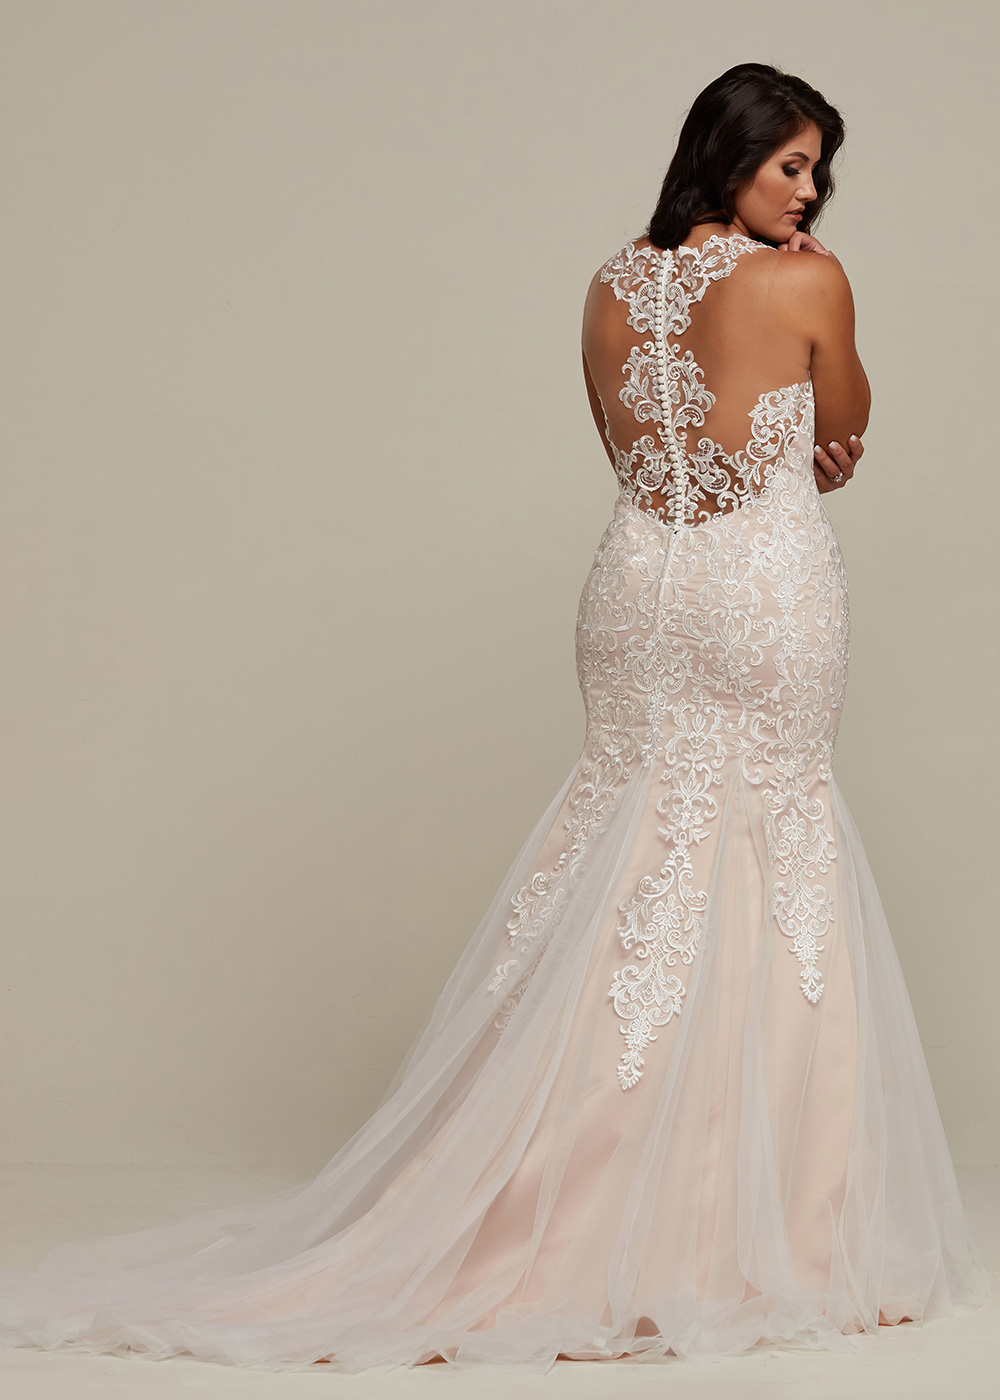 TH-Arianna TH Wedding Dresses By Ashdon